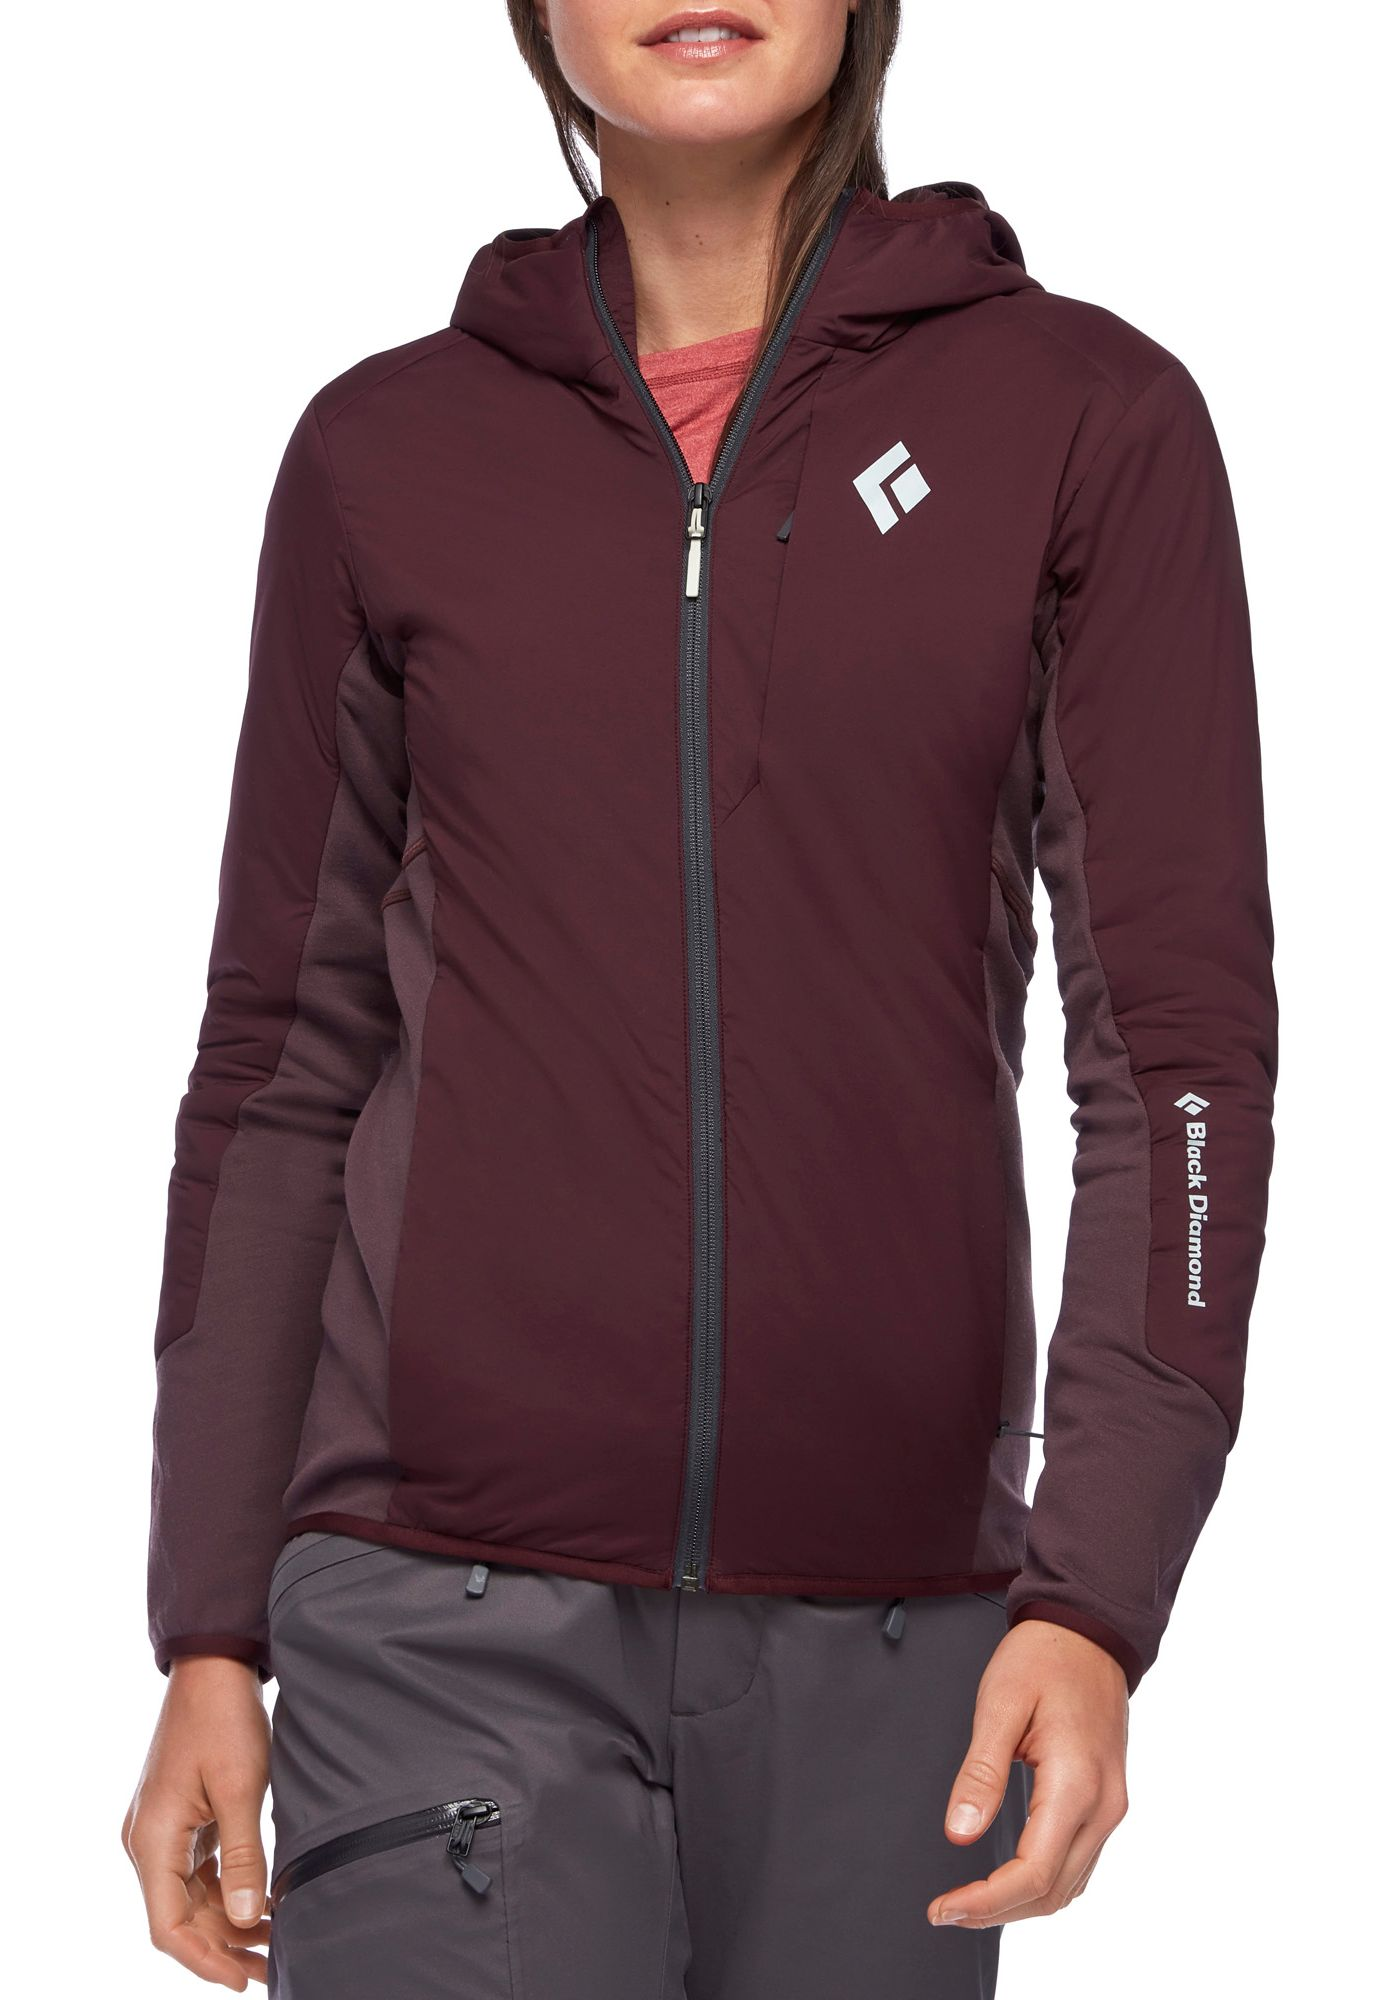 Black Diamond Women's First Light Hybrid Full Zip Jacket